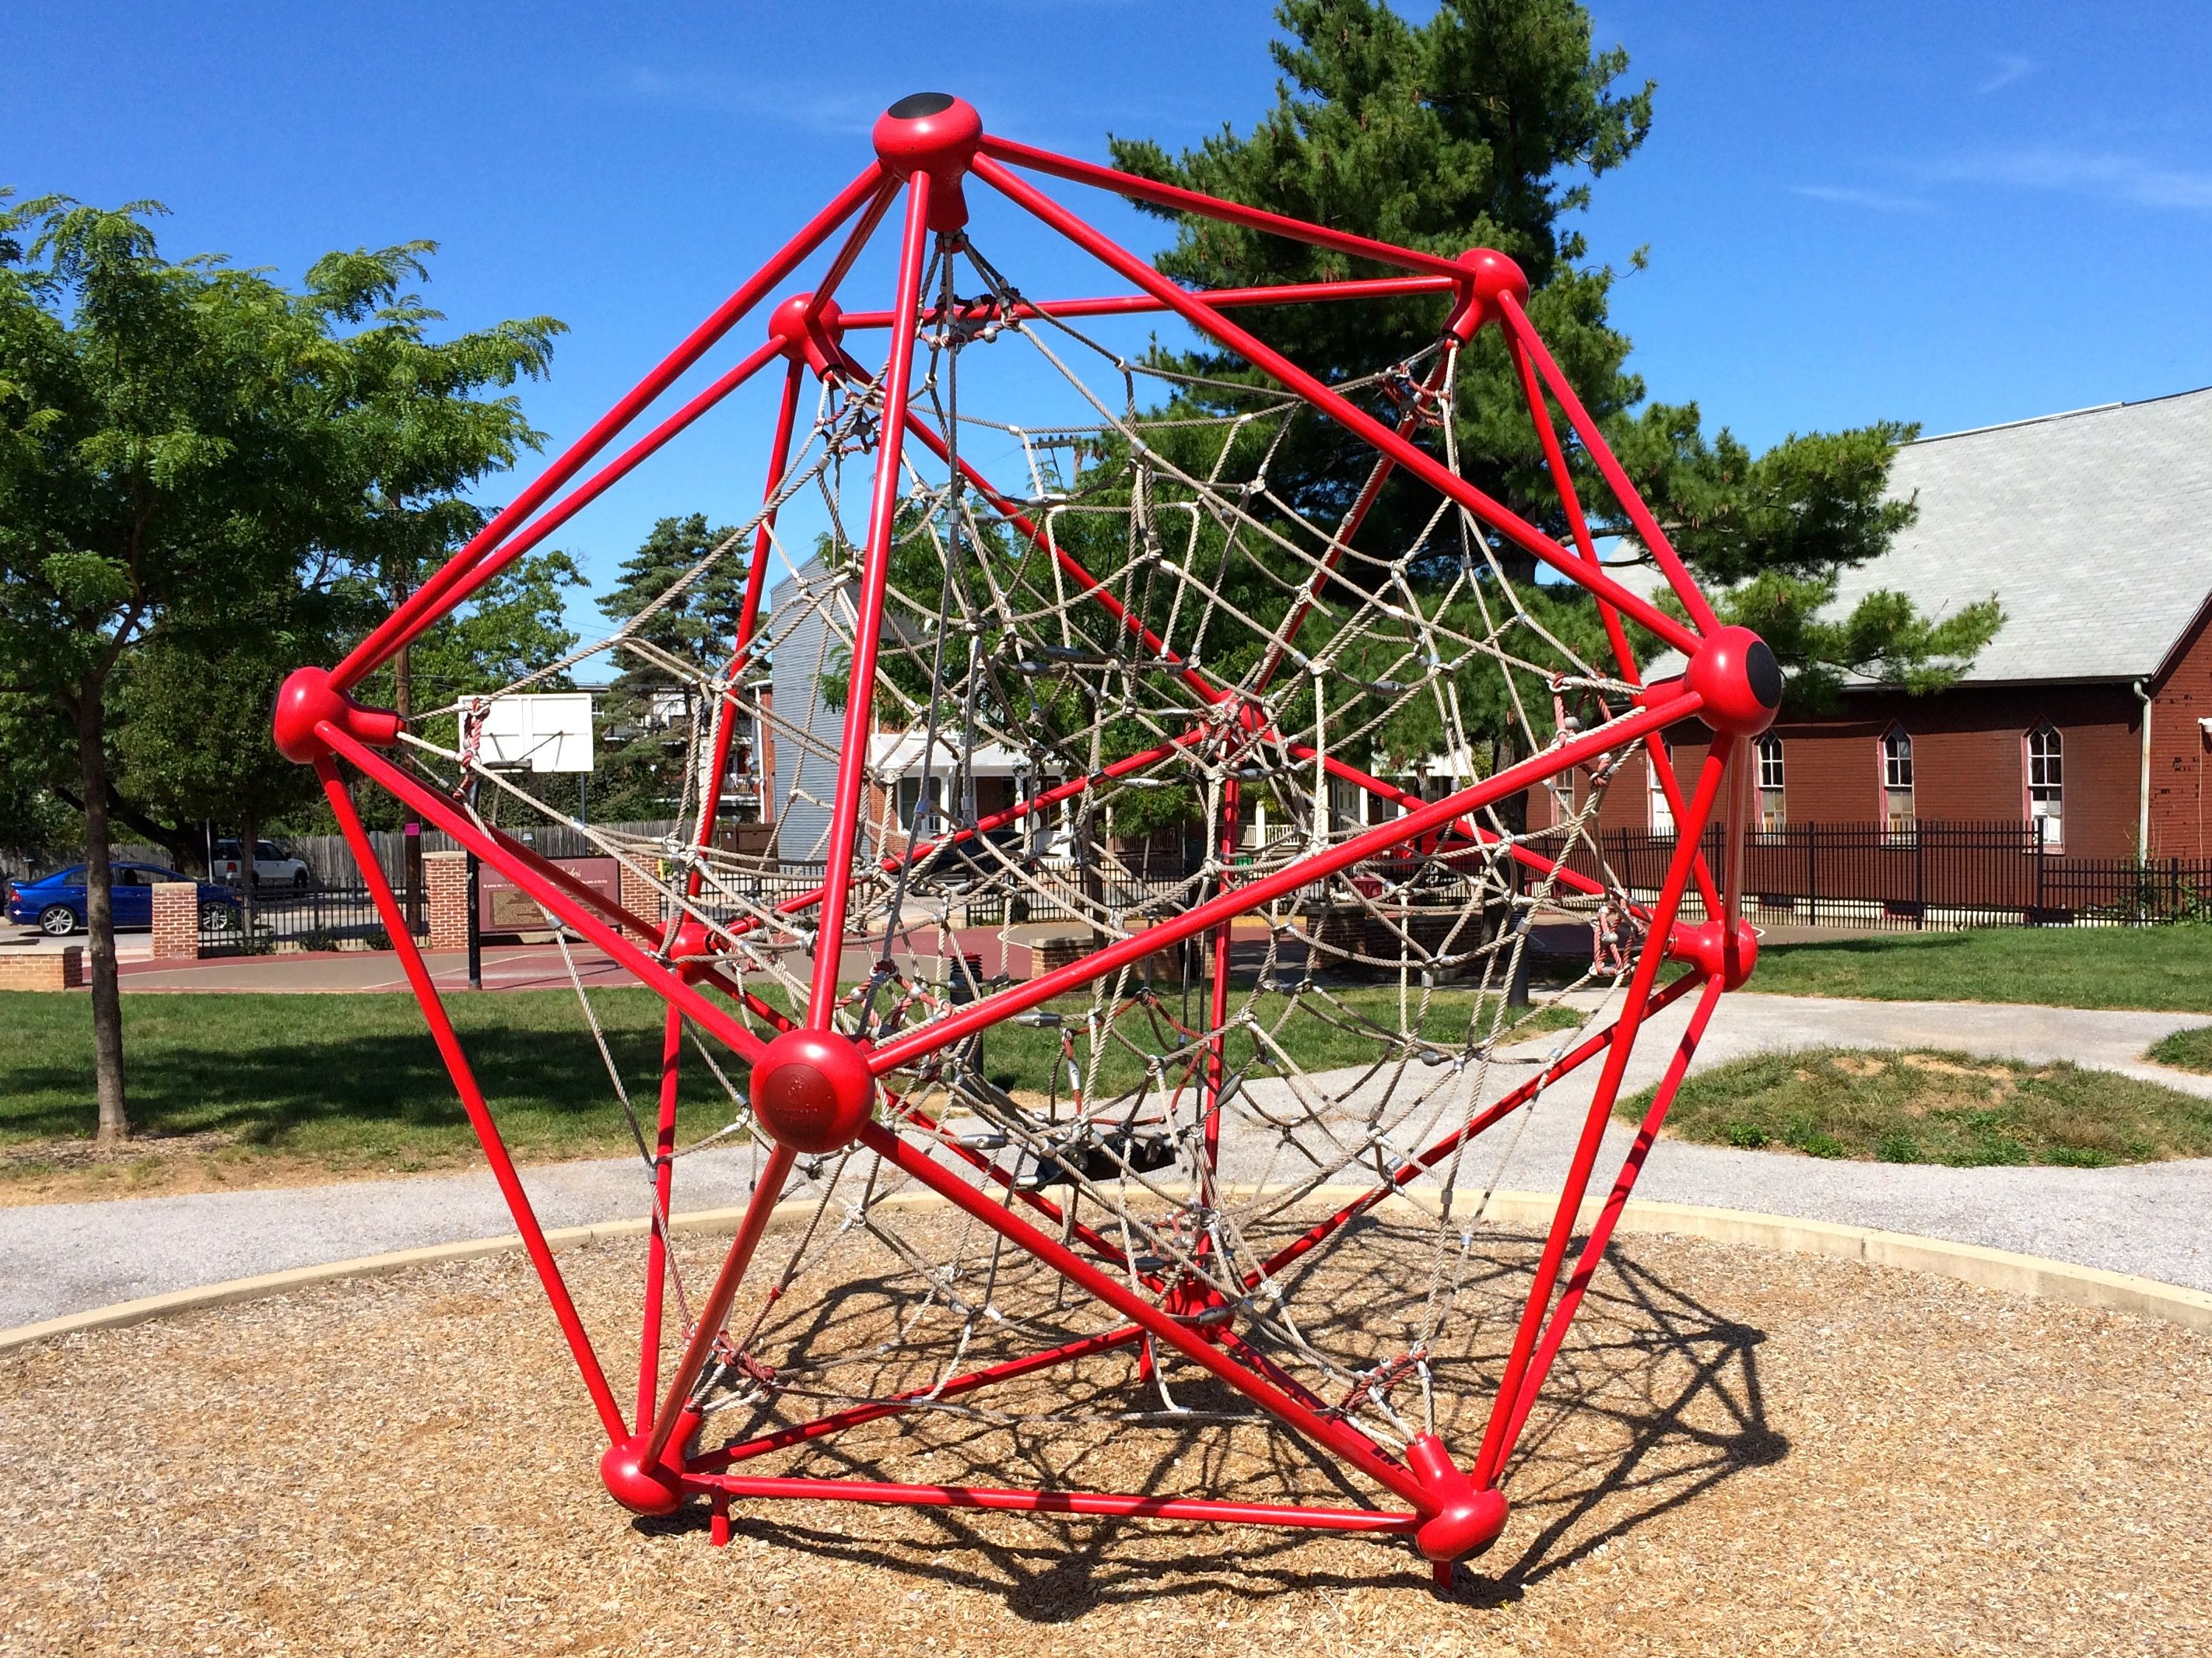 A 17-sided climbing structure